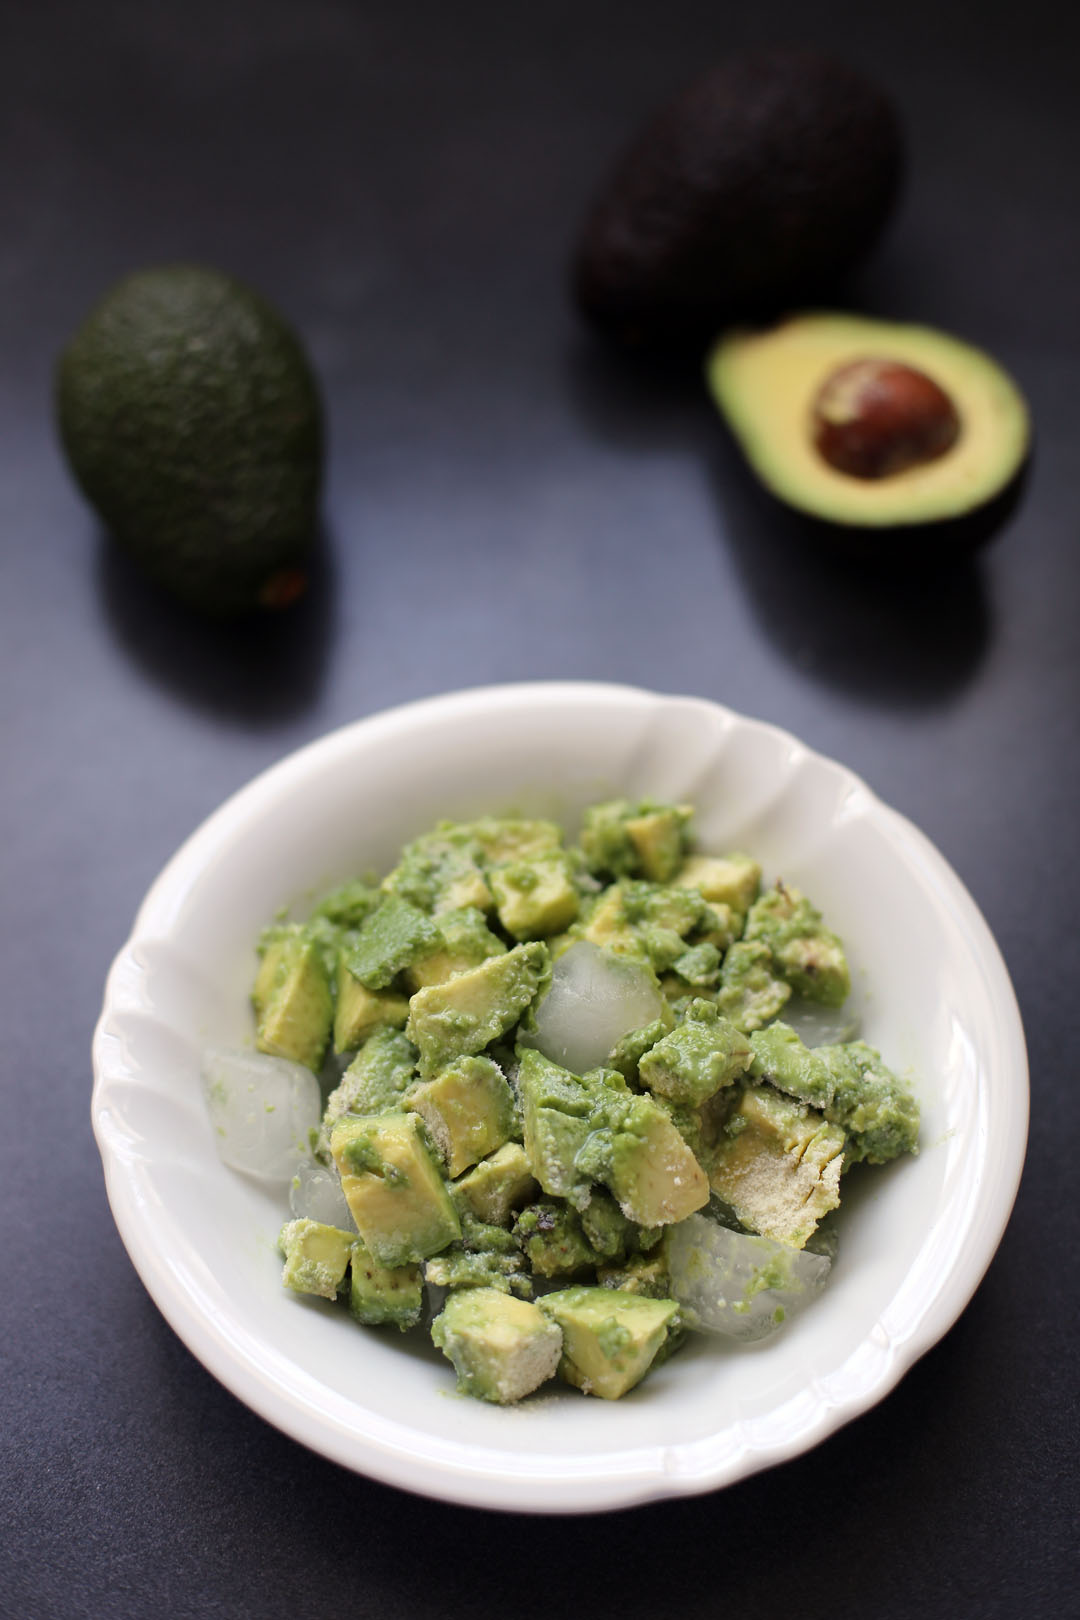 Avocado Smoothie from the Philippines - Mama Lisa's Books